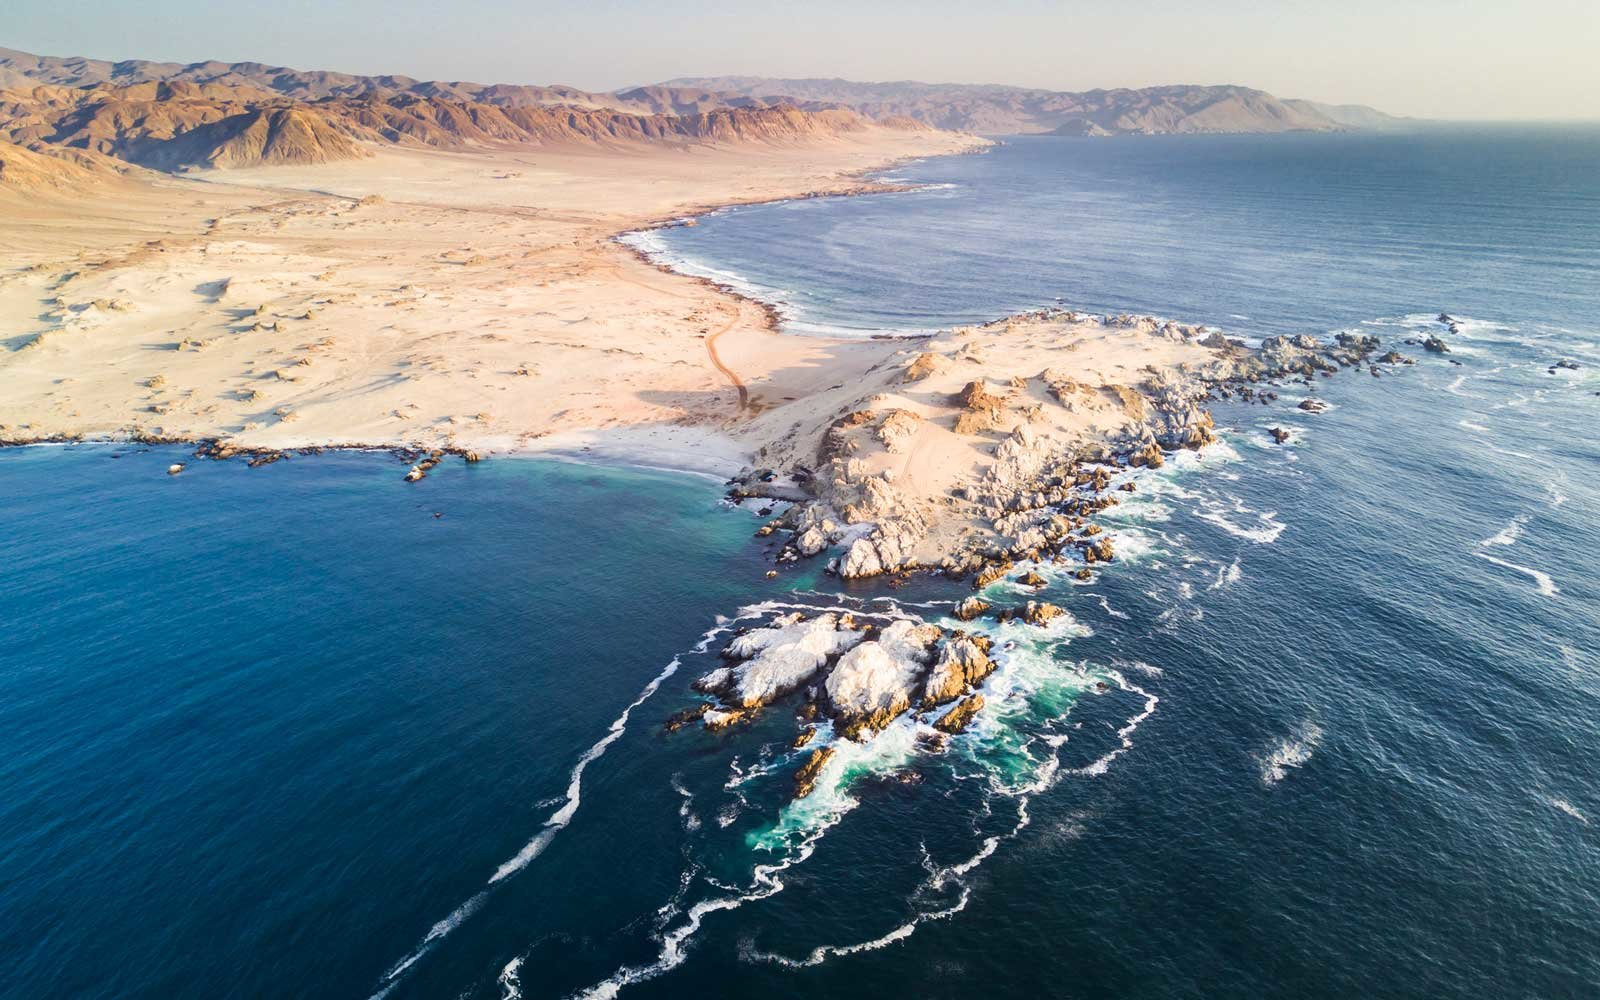 Atacama Desert has amazing beaches like this one called  Las Tortolas  in Taltal town at Antofagasta region, Chile.